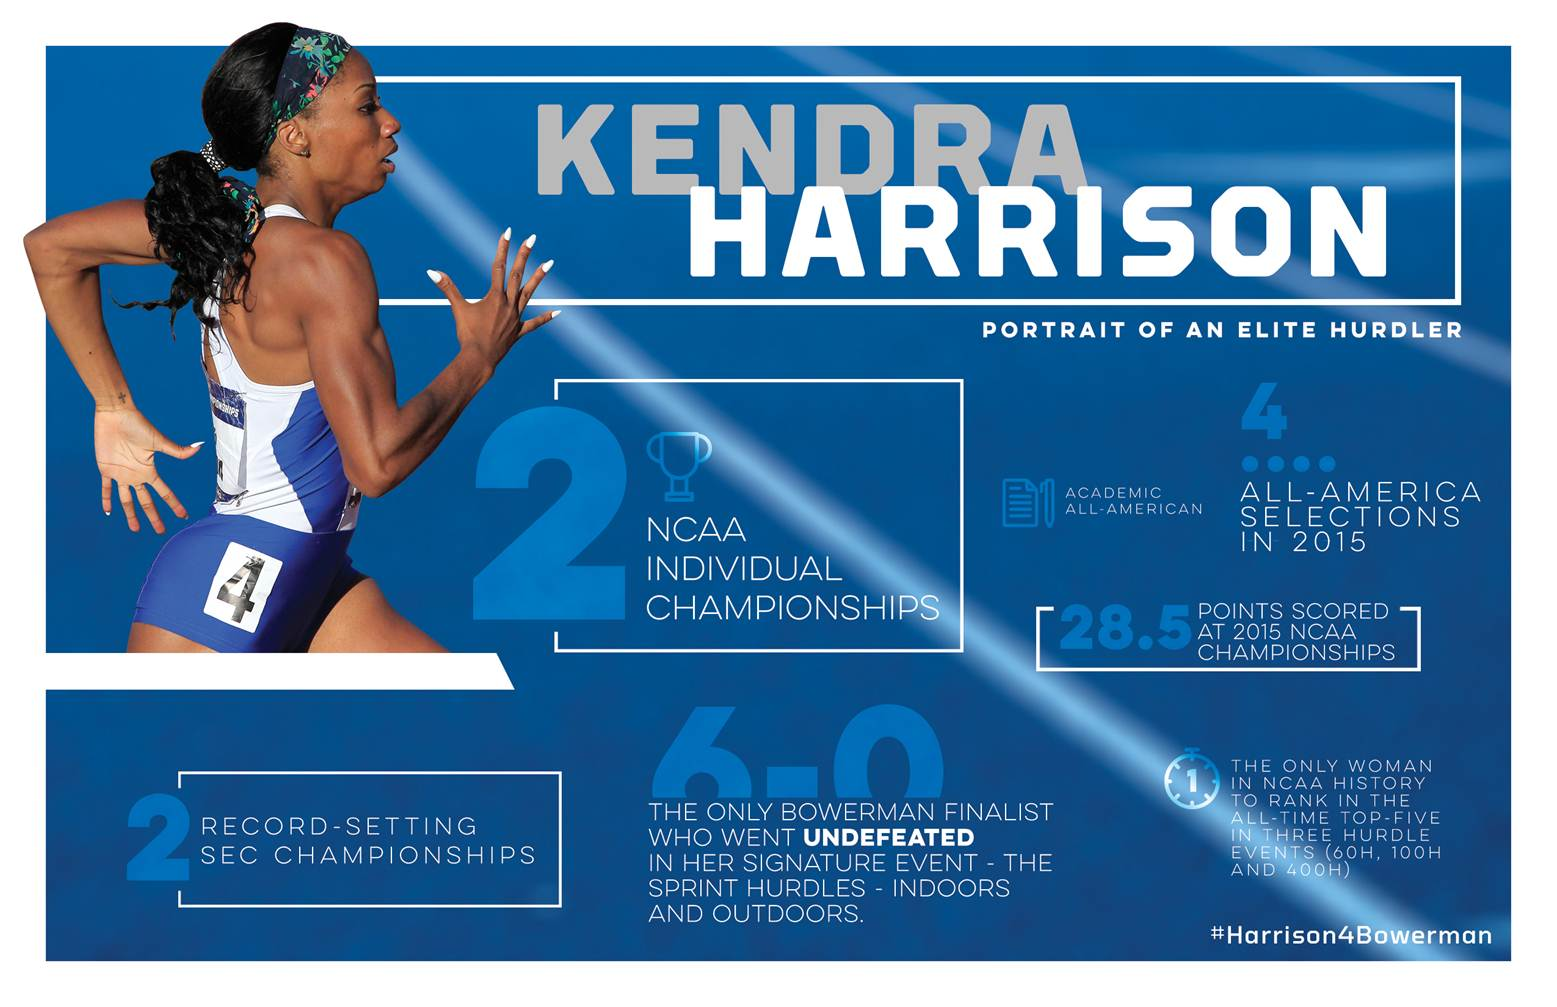 University of Kentucky track & field